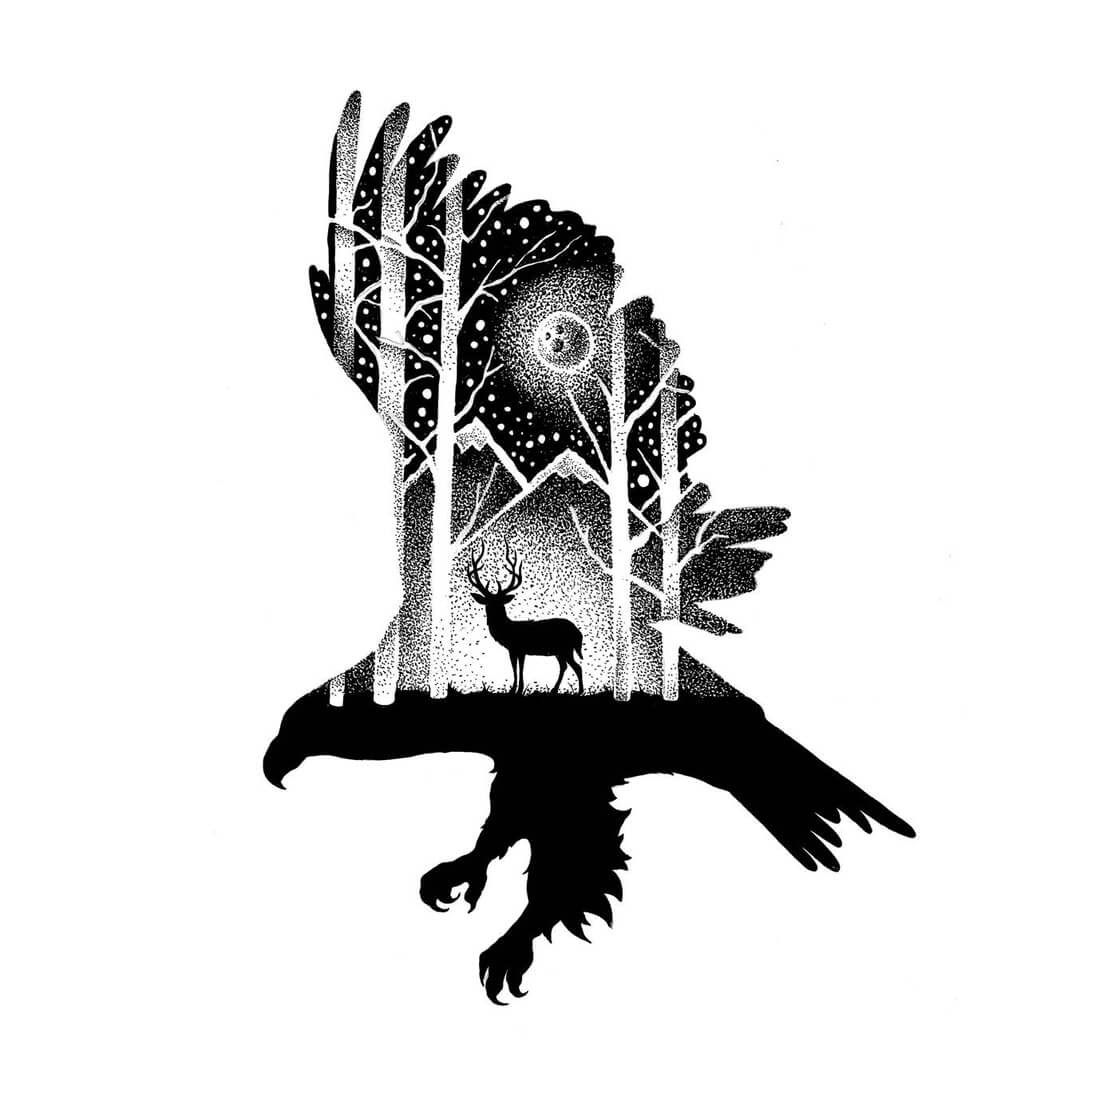 13-The-Eagle-and-the-Deer-Thiago-Bianchini-Ink-Animal-Drawings-Within-a-Drawing-www-designstack-co